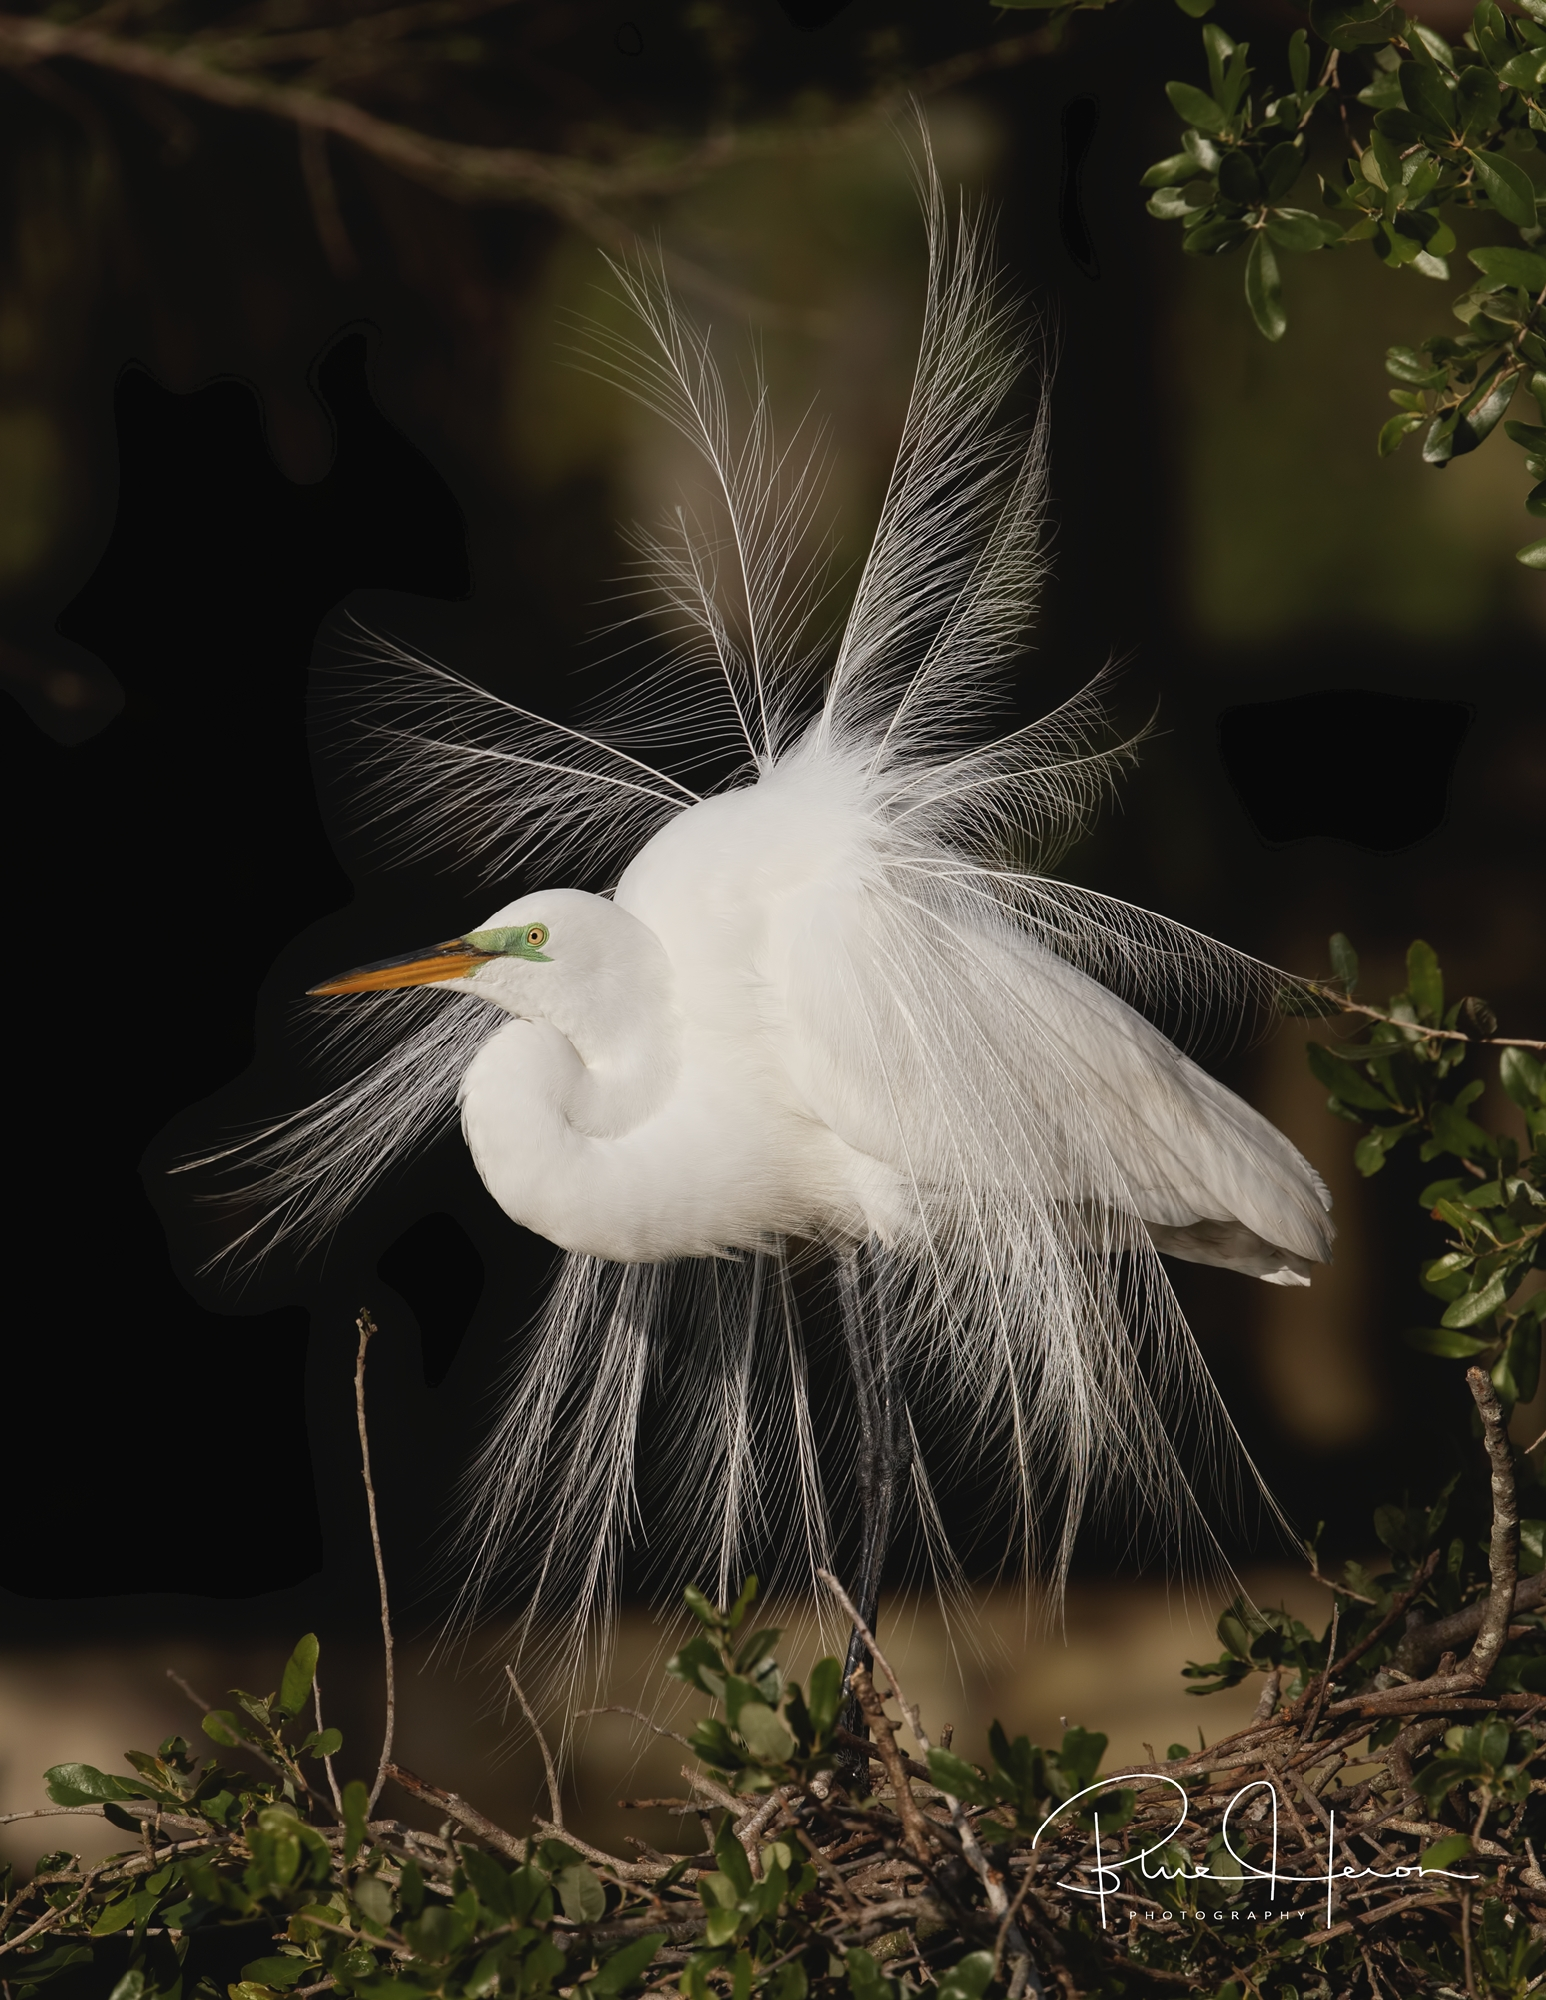 Great Egret Display, the head is usually lowered at the start..